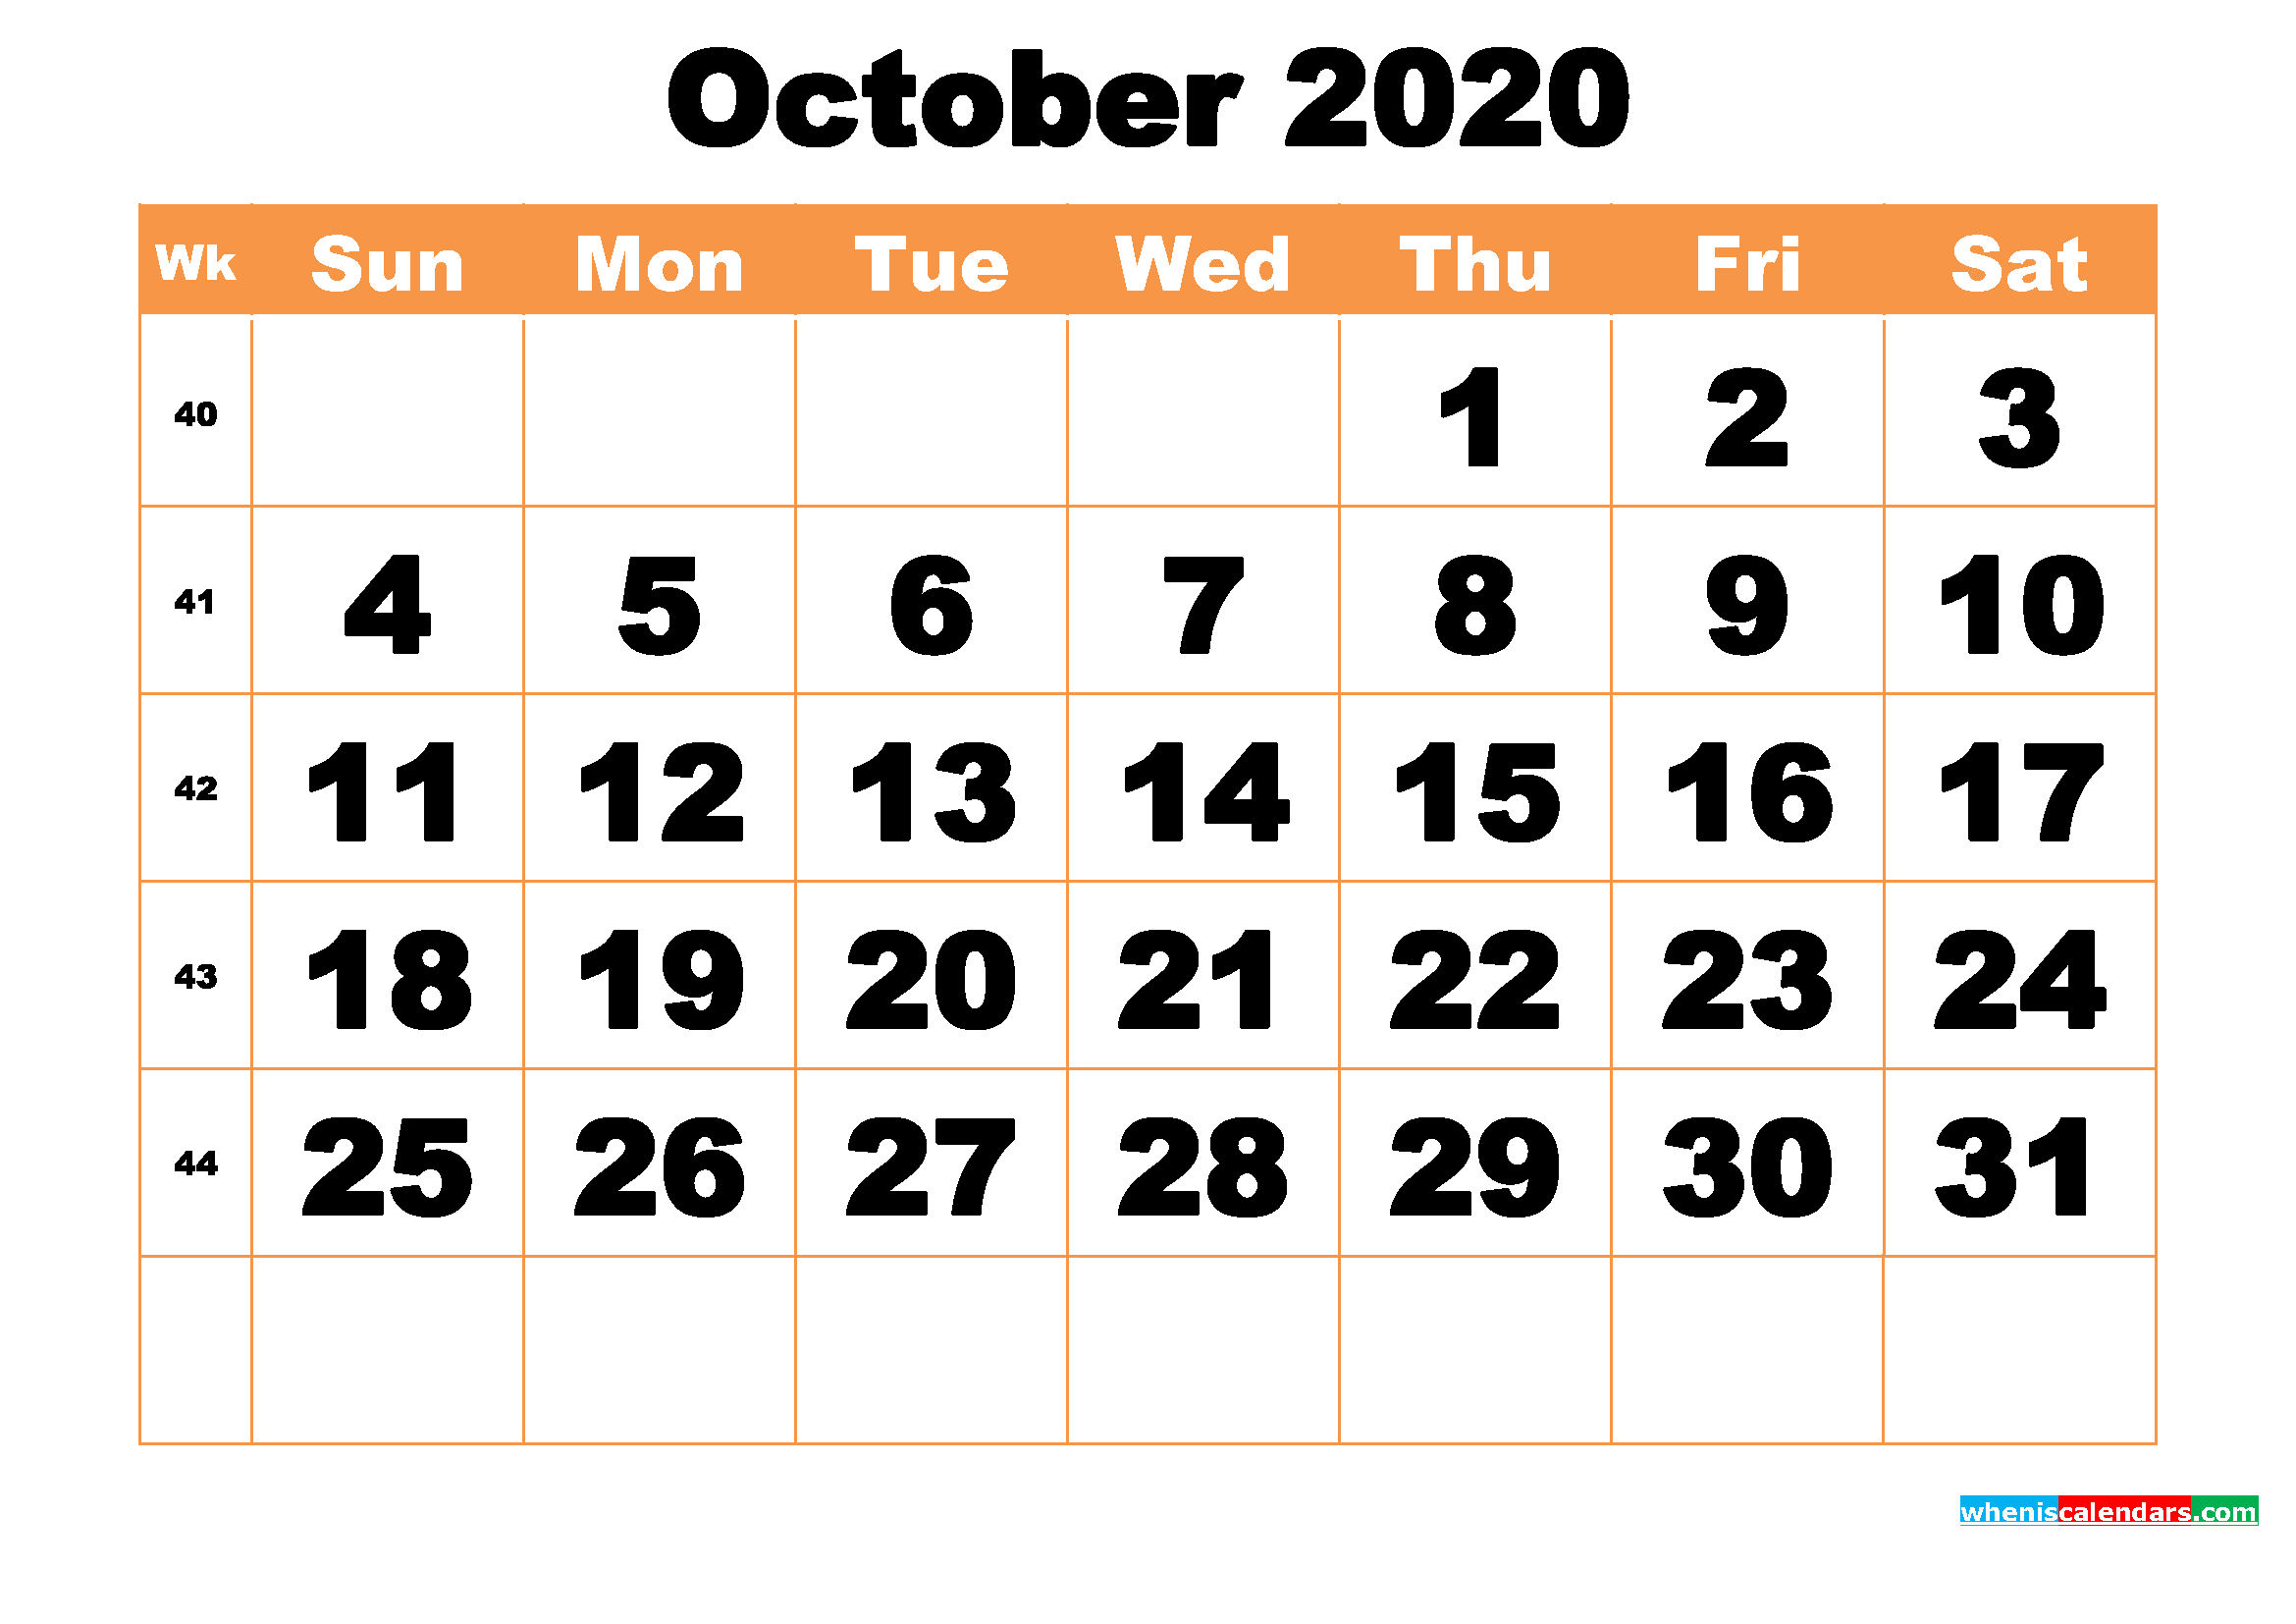 Free Printable October 2020 Calendar Word, PDF, Image